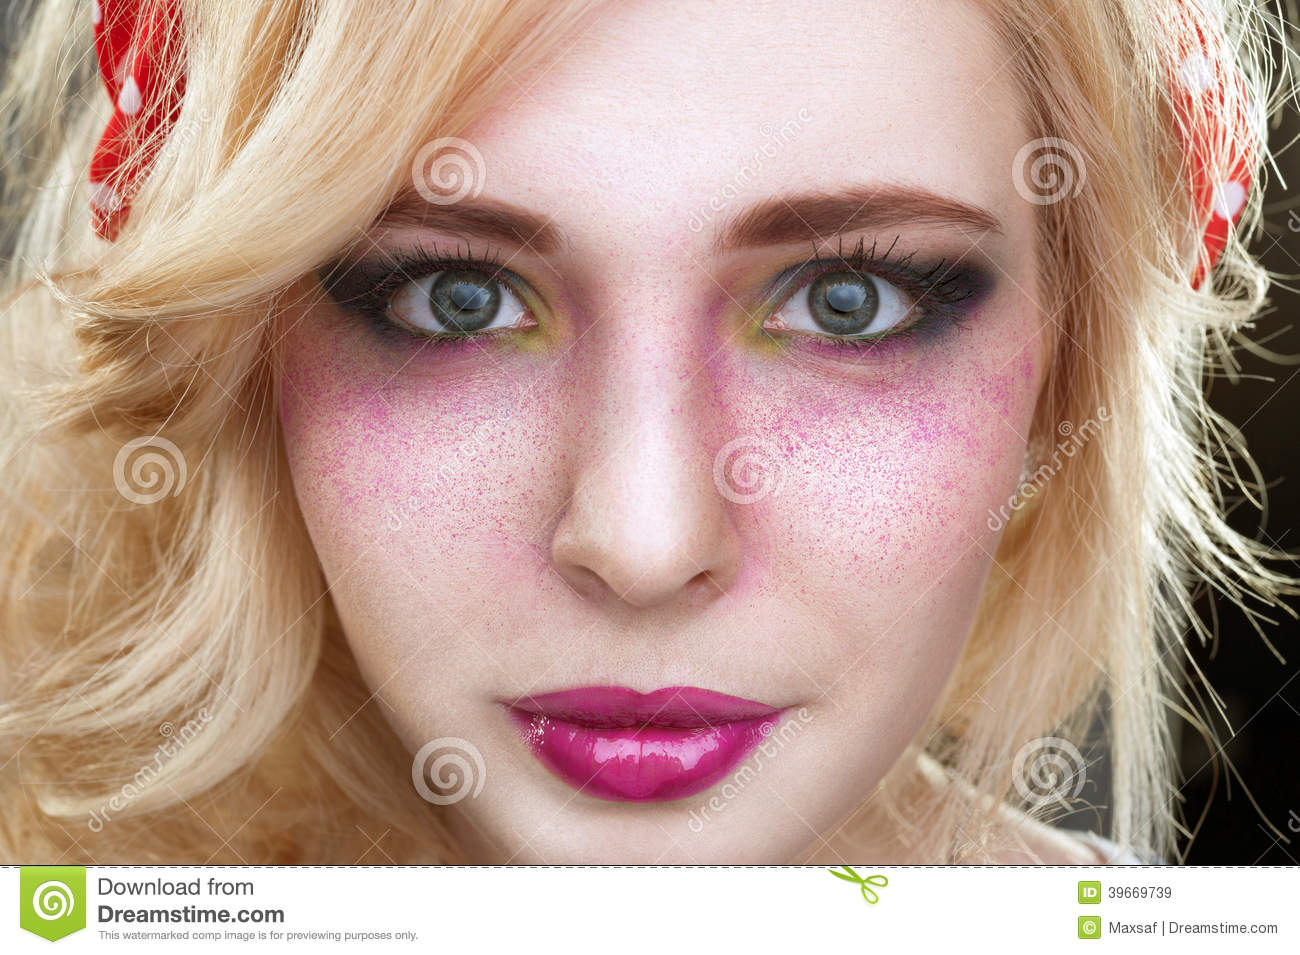 Pinup retro vintage Blonde woman with bright creative make-up an